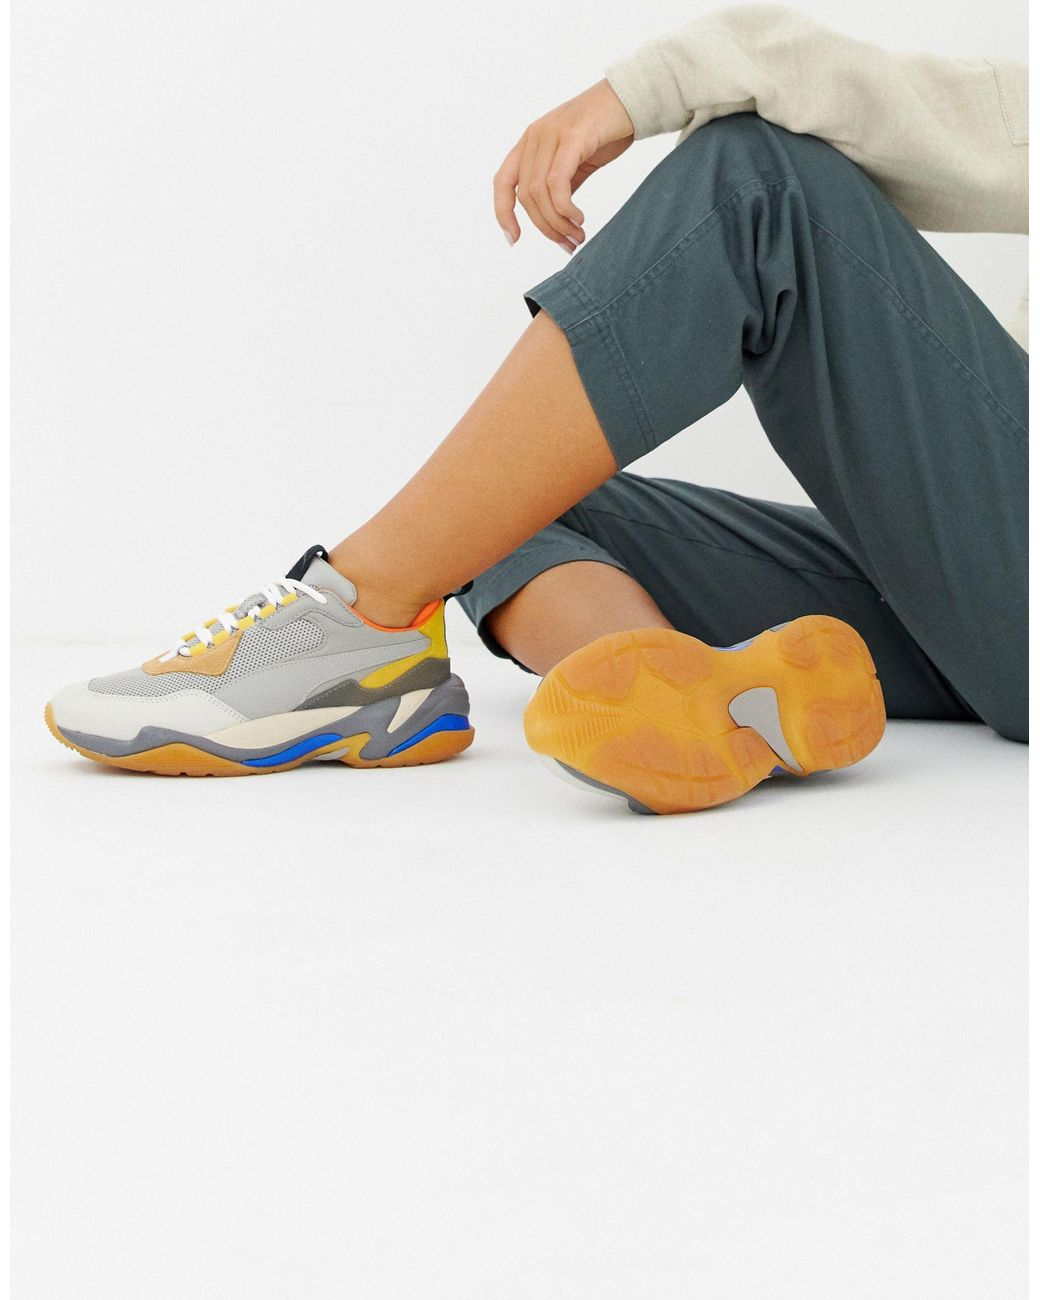 PUMA Leather Thunder Spectra Sneakers